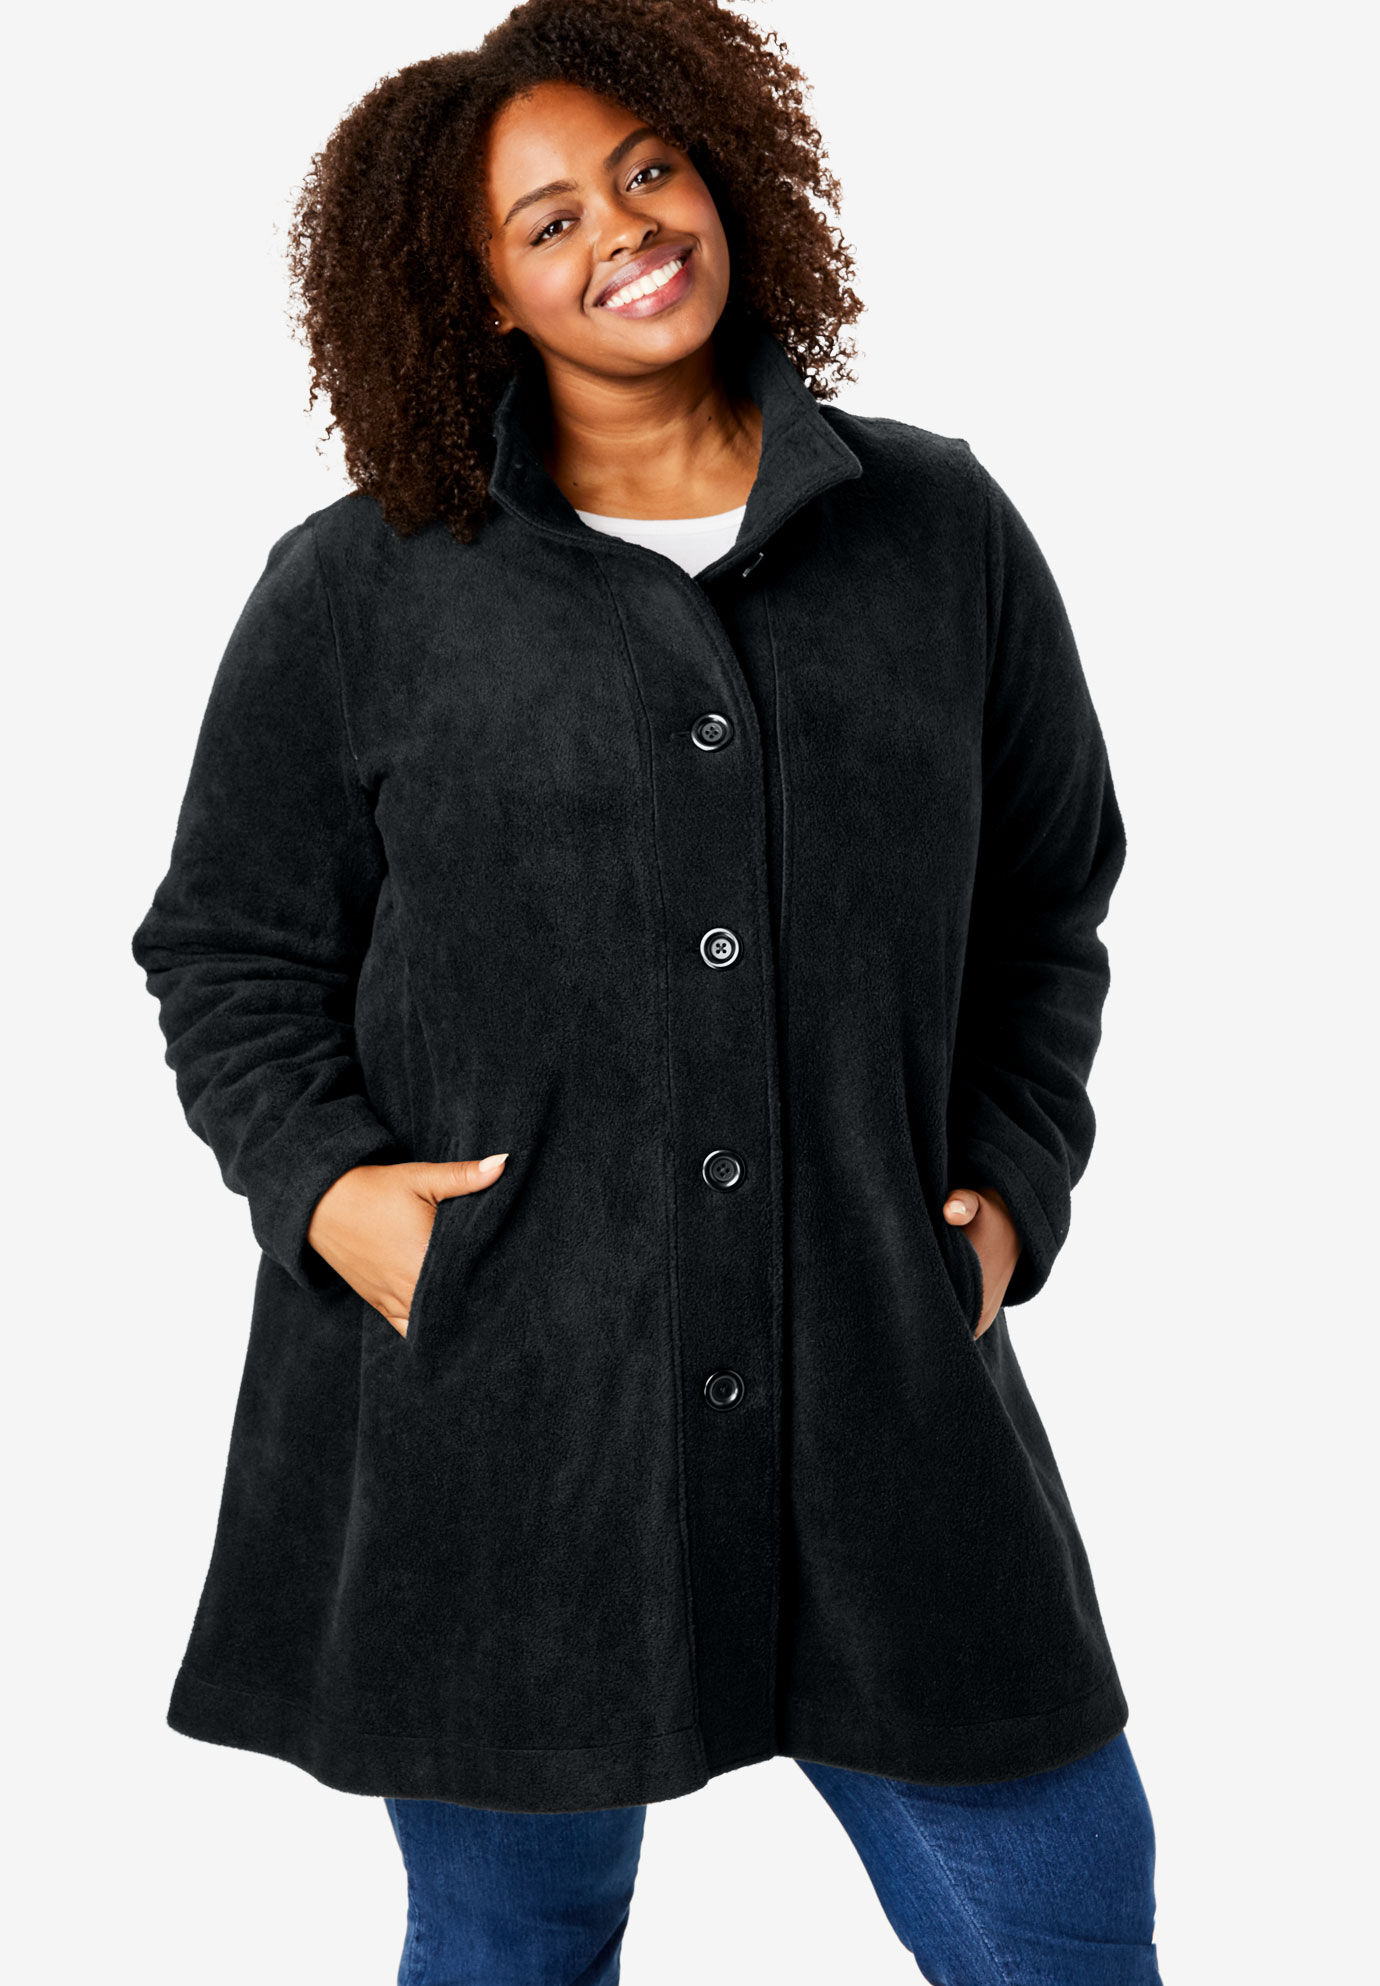 162a7db3b6c Woman Within Plus Size Hooded Berber Fleece Duster Coat Christmas ...